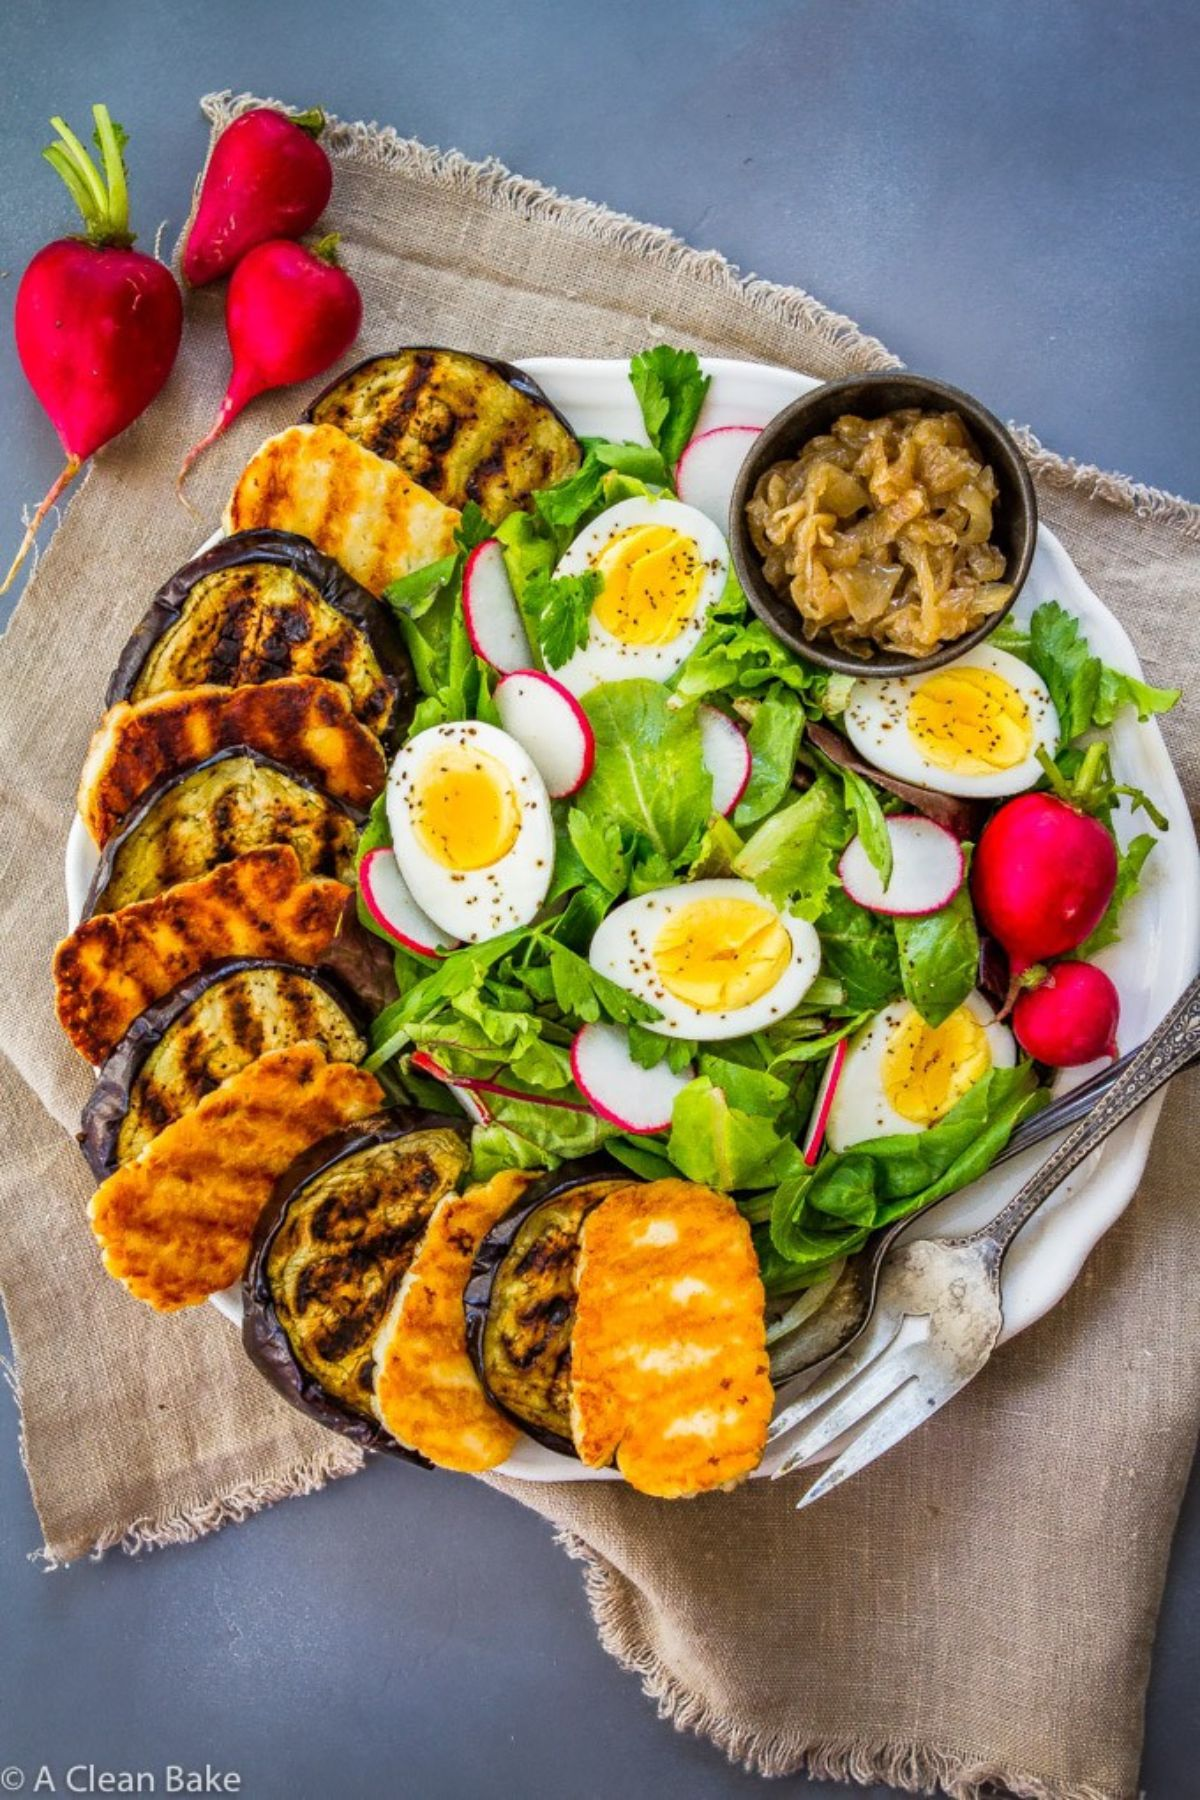 ON a blue counter is a hessian cloth. On top of this is a white round plate with layers of fried eggplant and halloumi on the left, and salad leaves radishes and halved boiled eggs on the right. A small pot of pickle sits at the top of the plate. To the left are 3 radishes